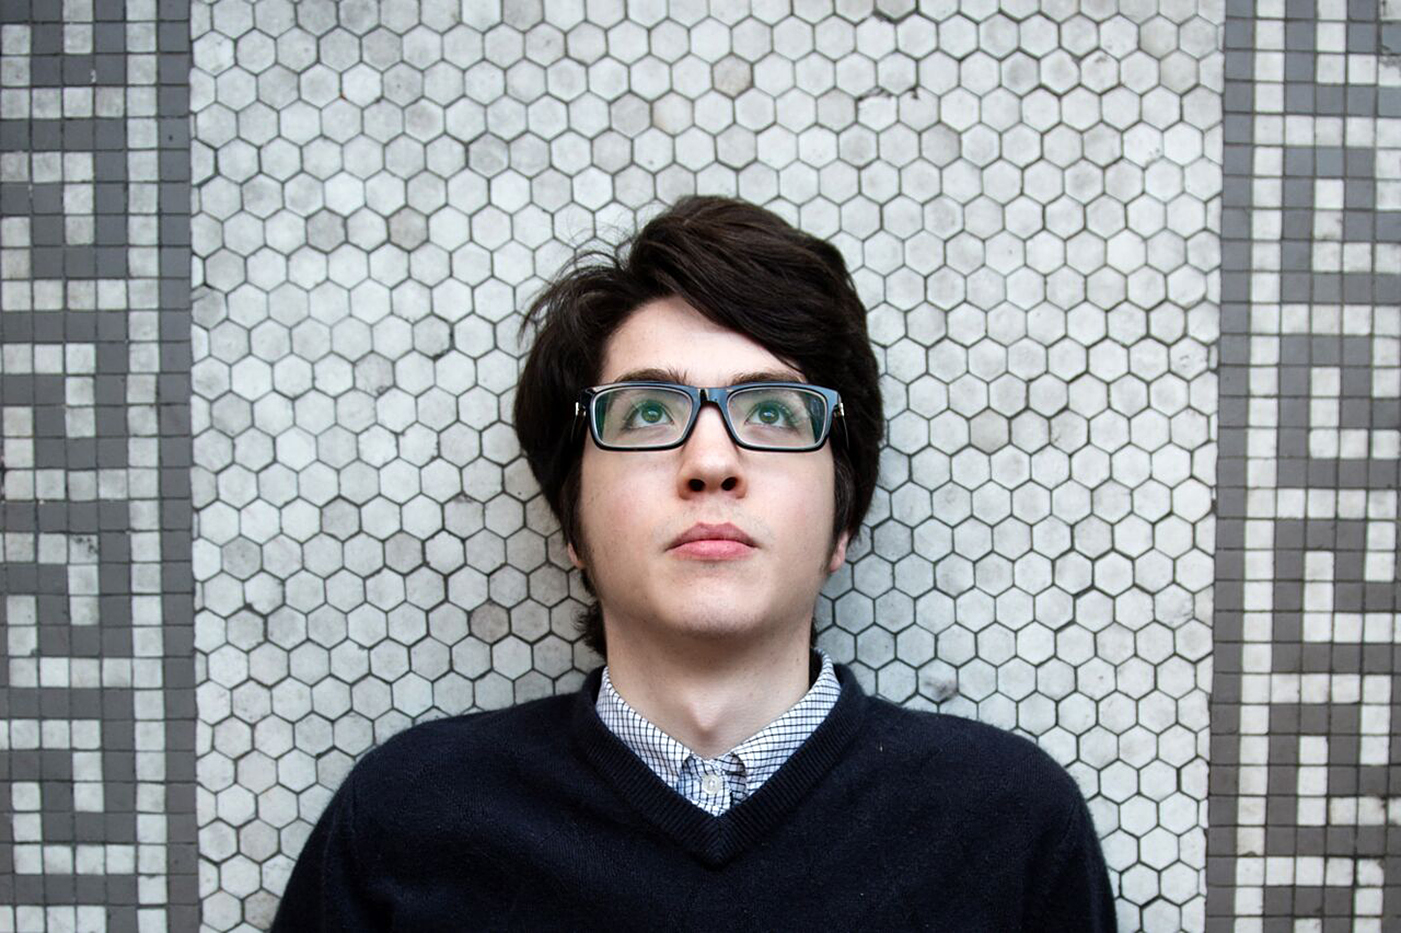 Car Seat Headrest  Dorm Room Prodigy to Indie Rock Sensation     Car Seat Headrest  Will Toledo